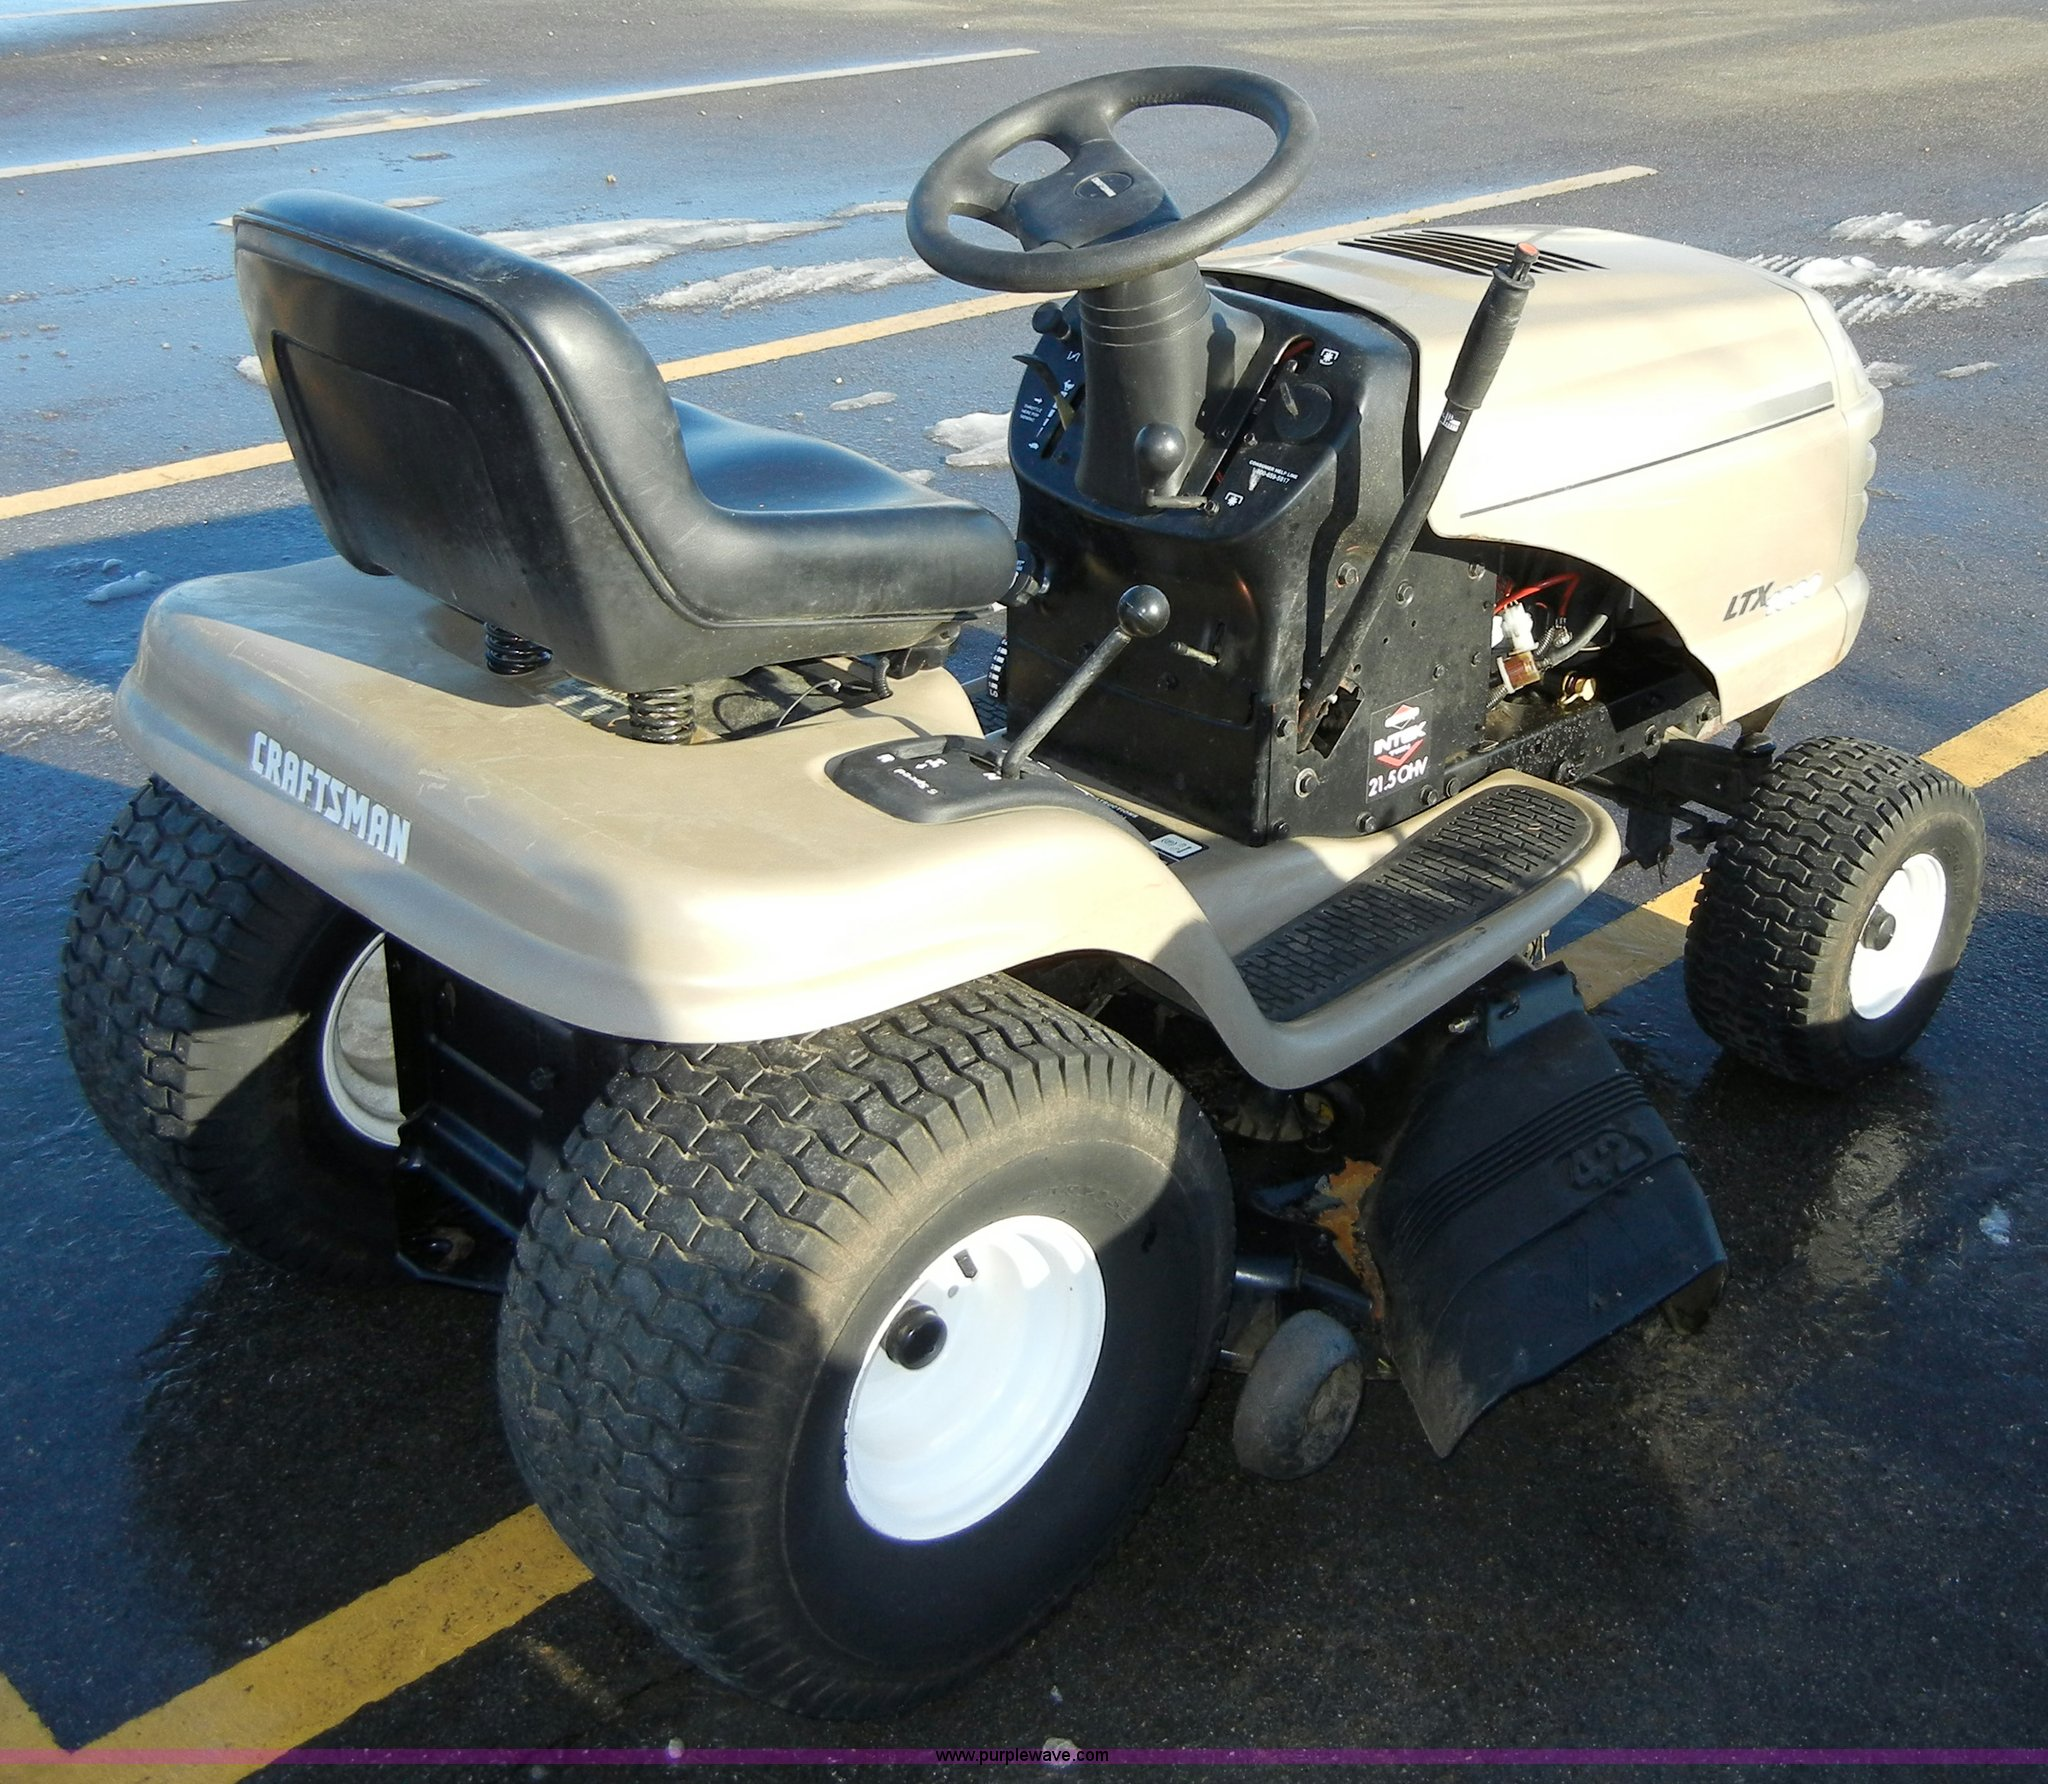 Craftsman LTX 1000 lawn tractor | Item 2135 | SOLD! February